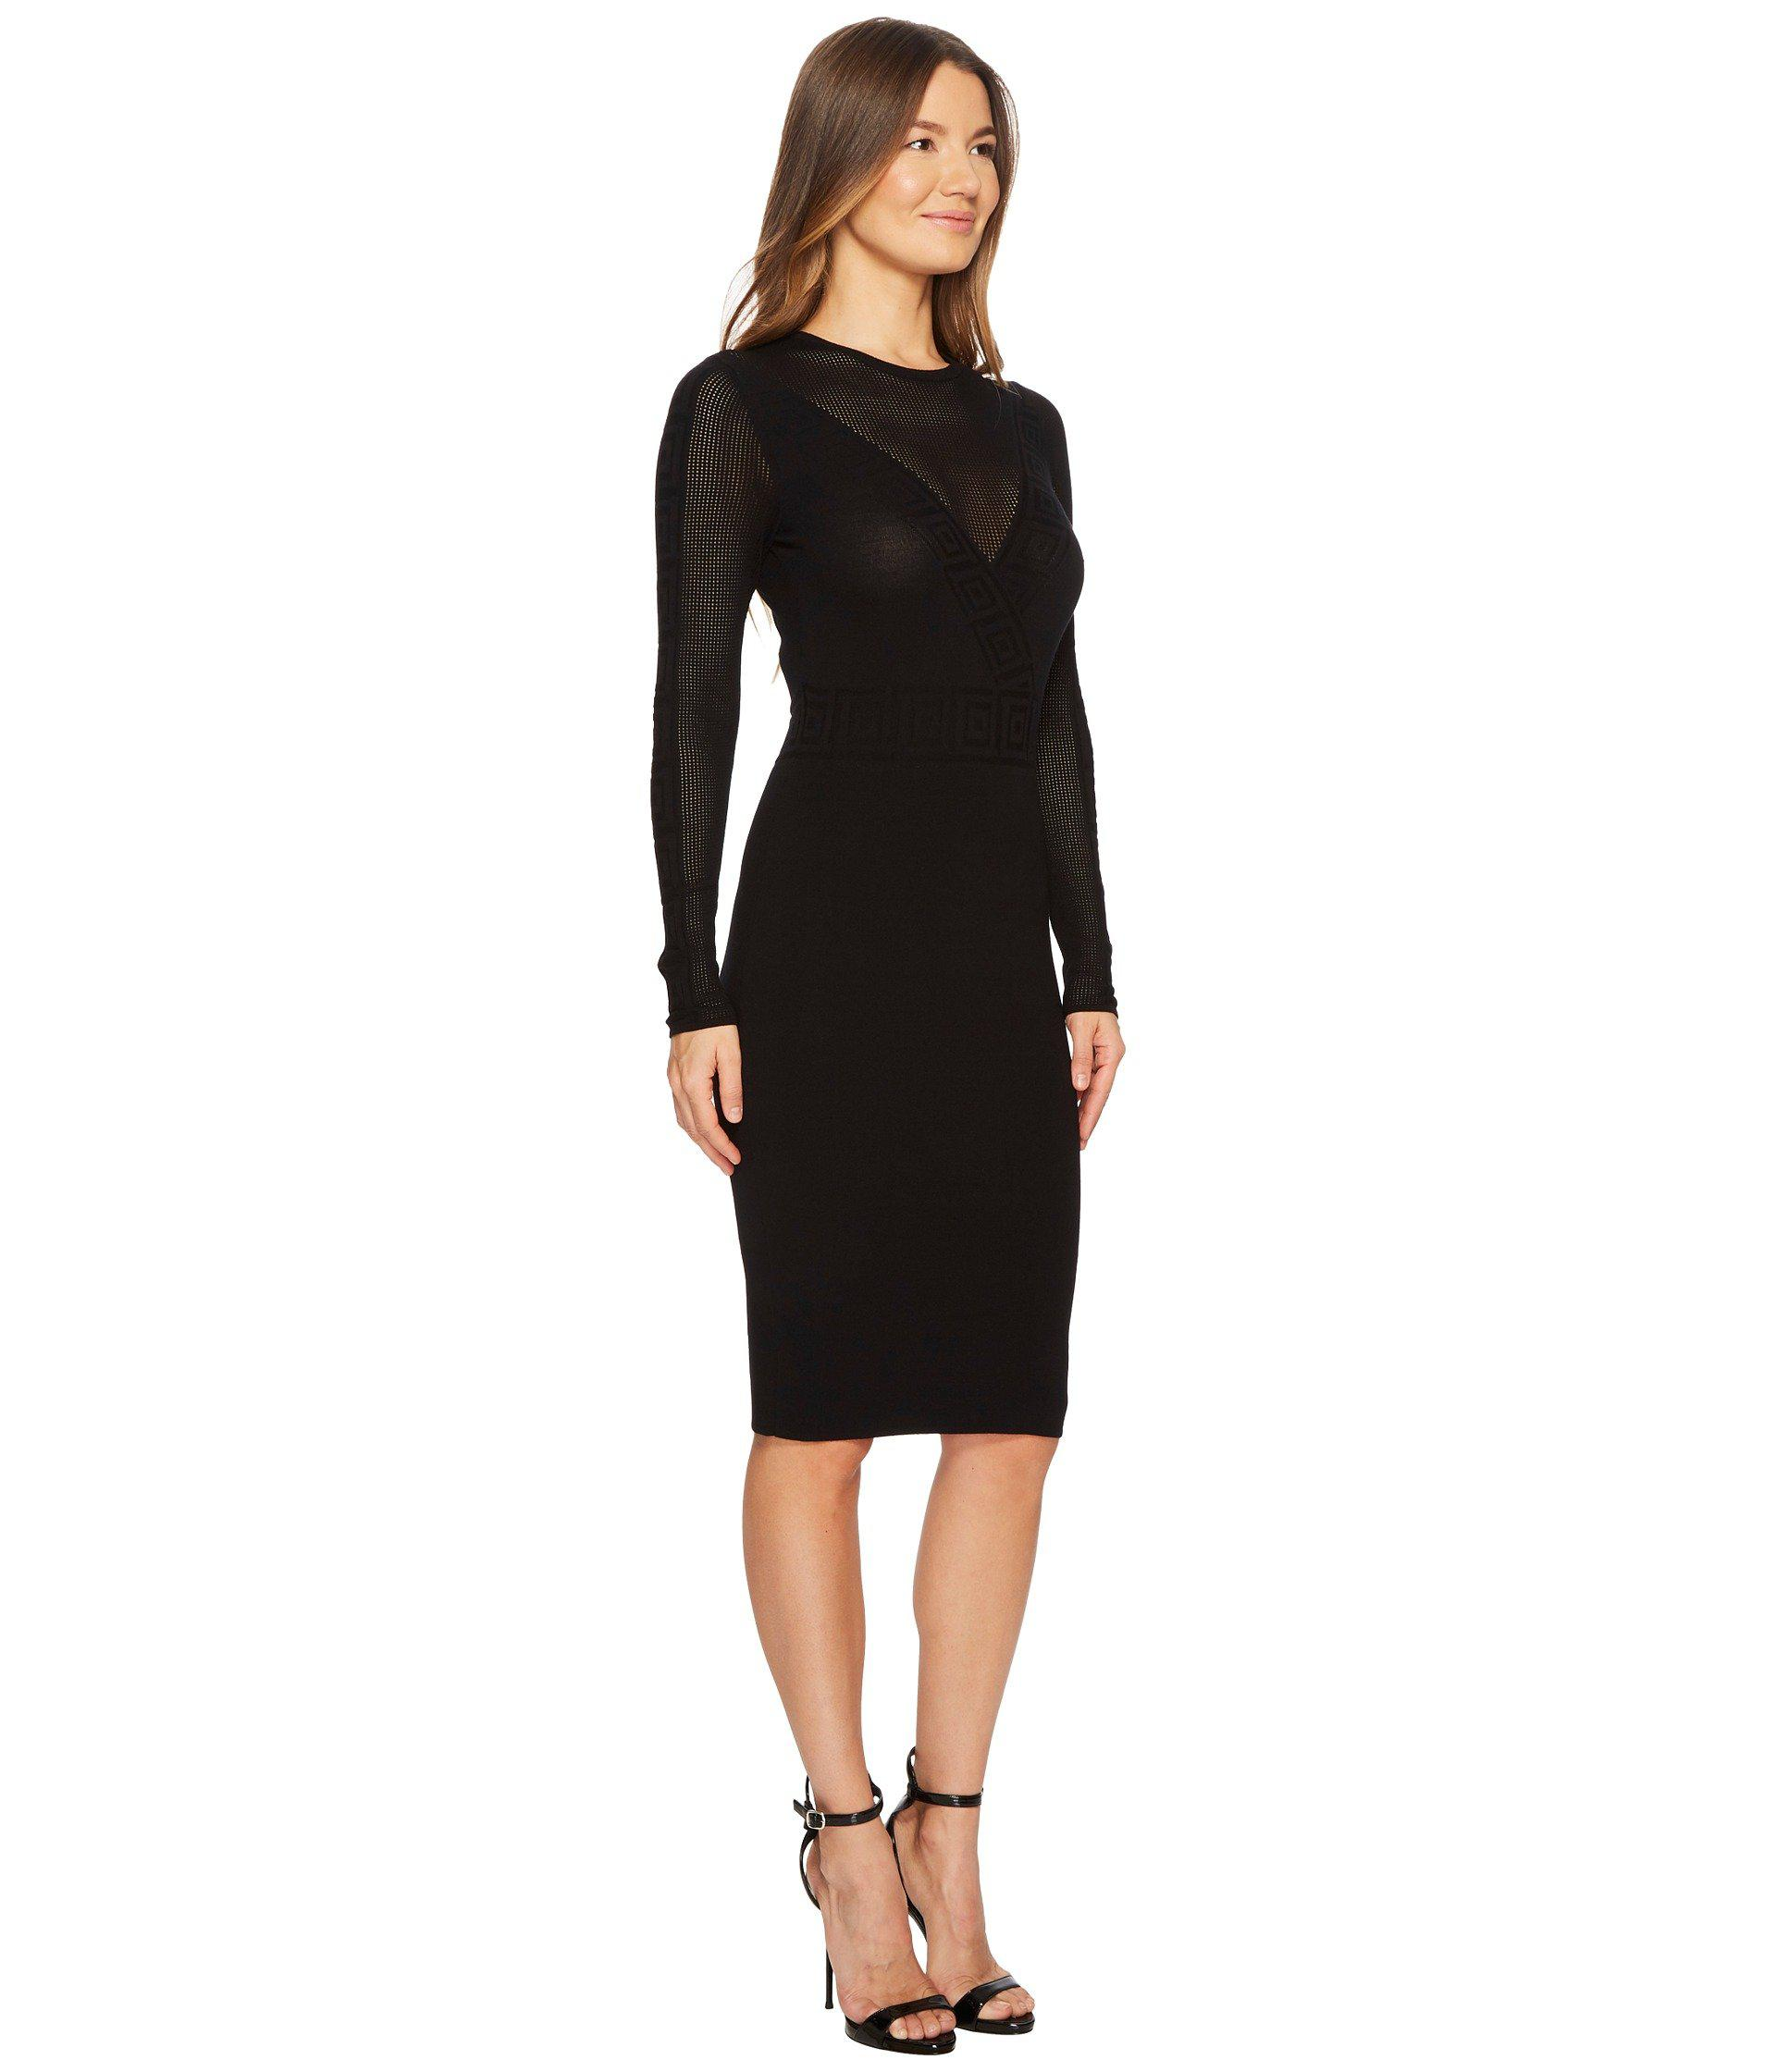 22263495685c Versace Abito Maglia Donna Long Sleeve Dress in Black - Lyst